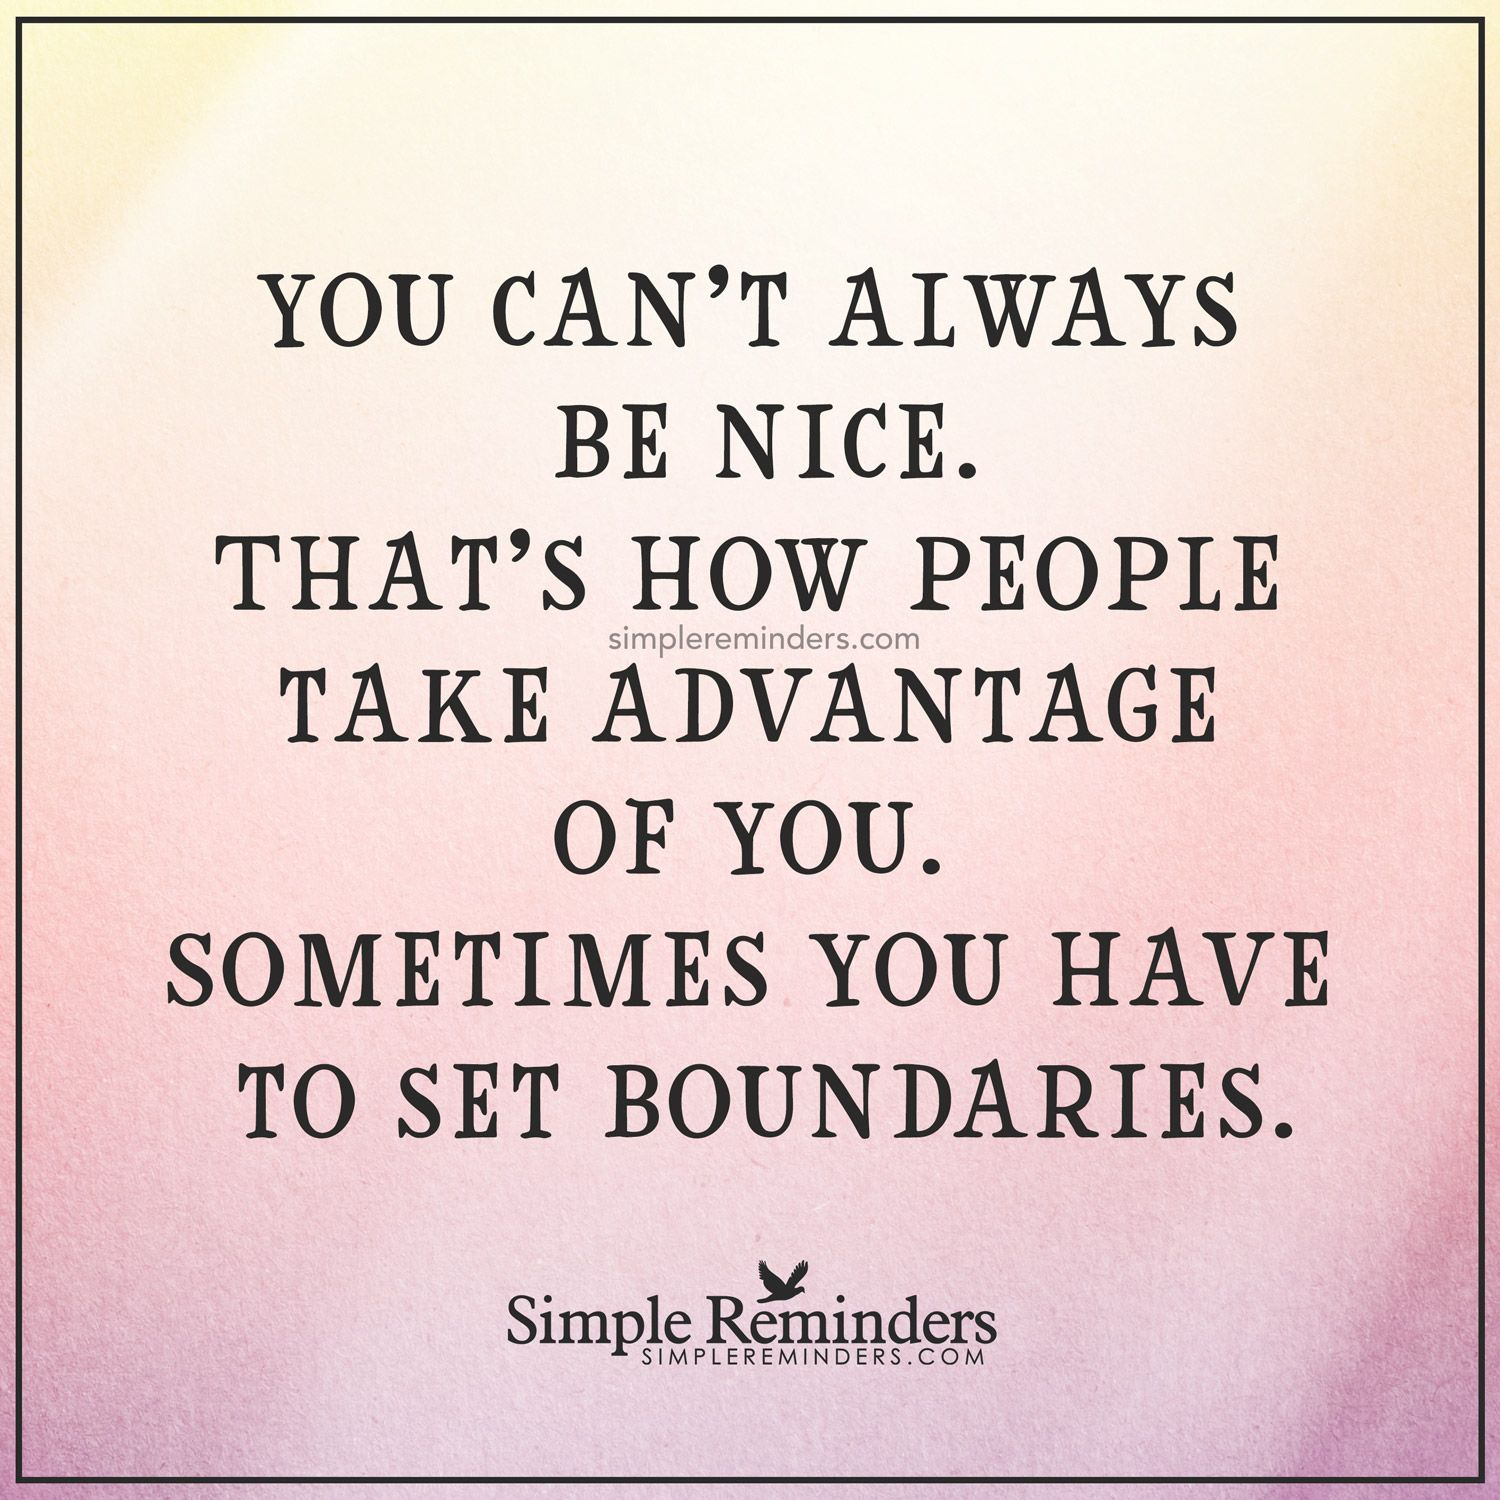 Quotes Nice Set Boundaries You Can't Always Be Nicethat's How People Take